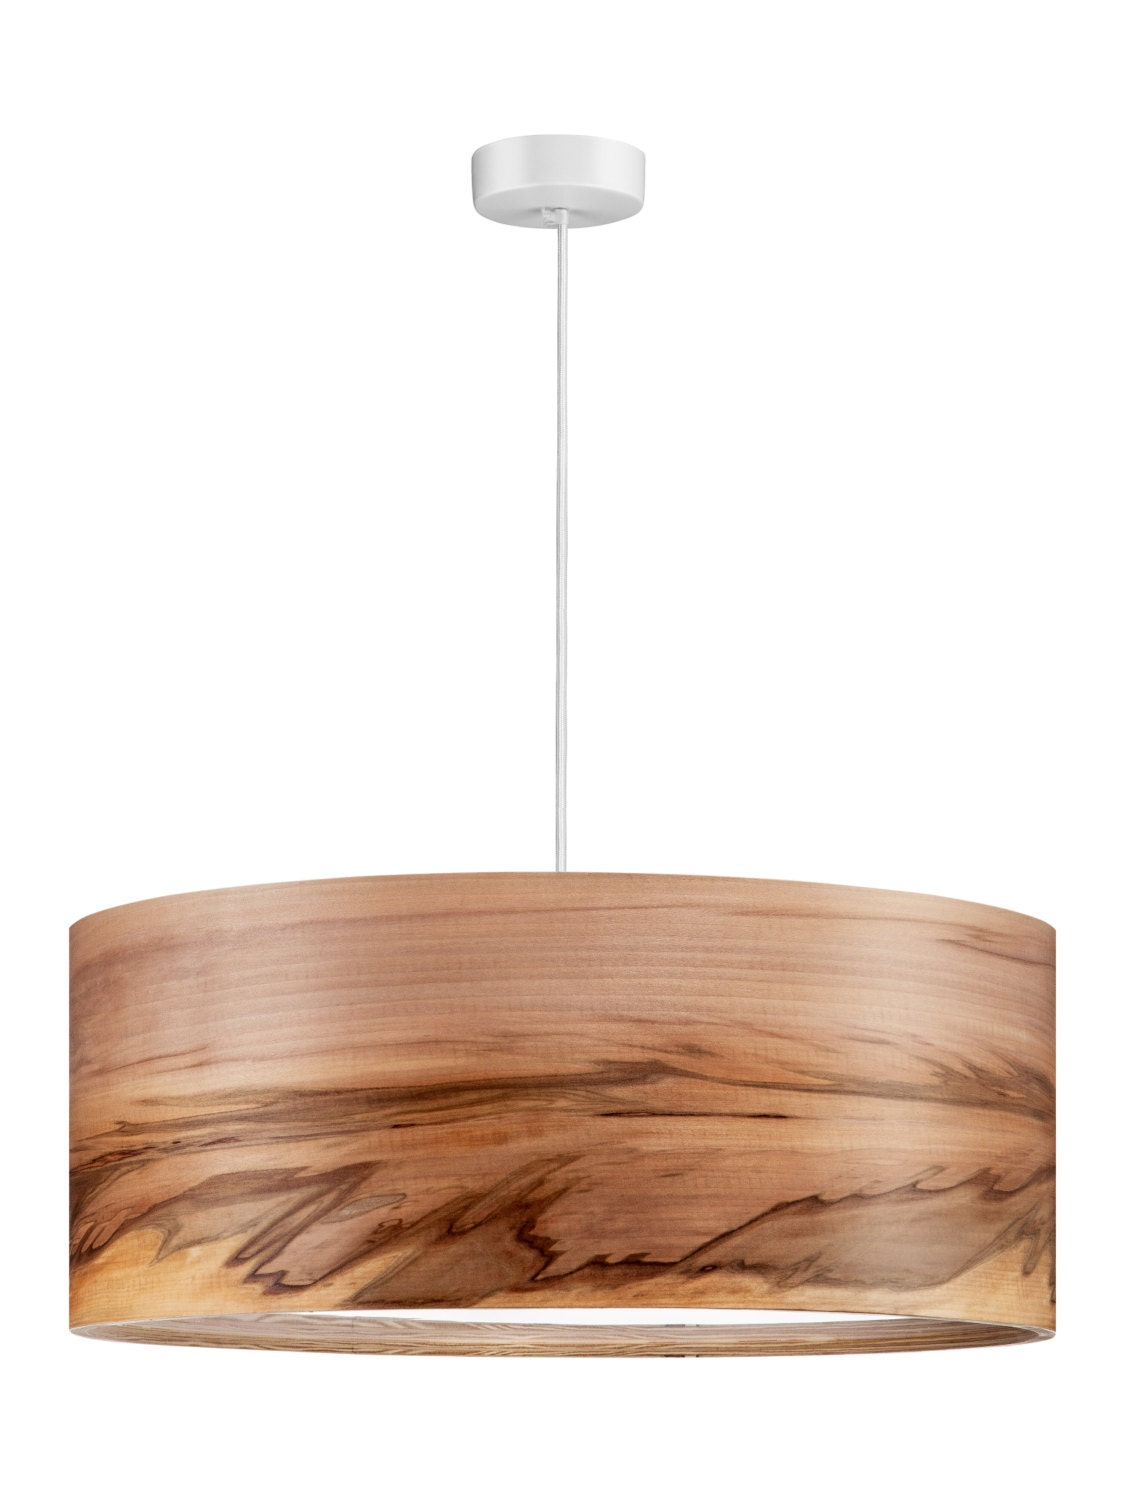 Pendant lamp chandelier ceiling lamp pendant lights for Ceiling lamp wood